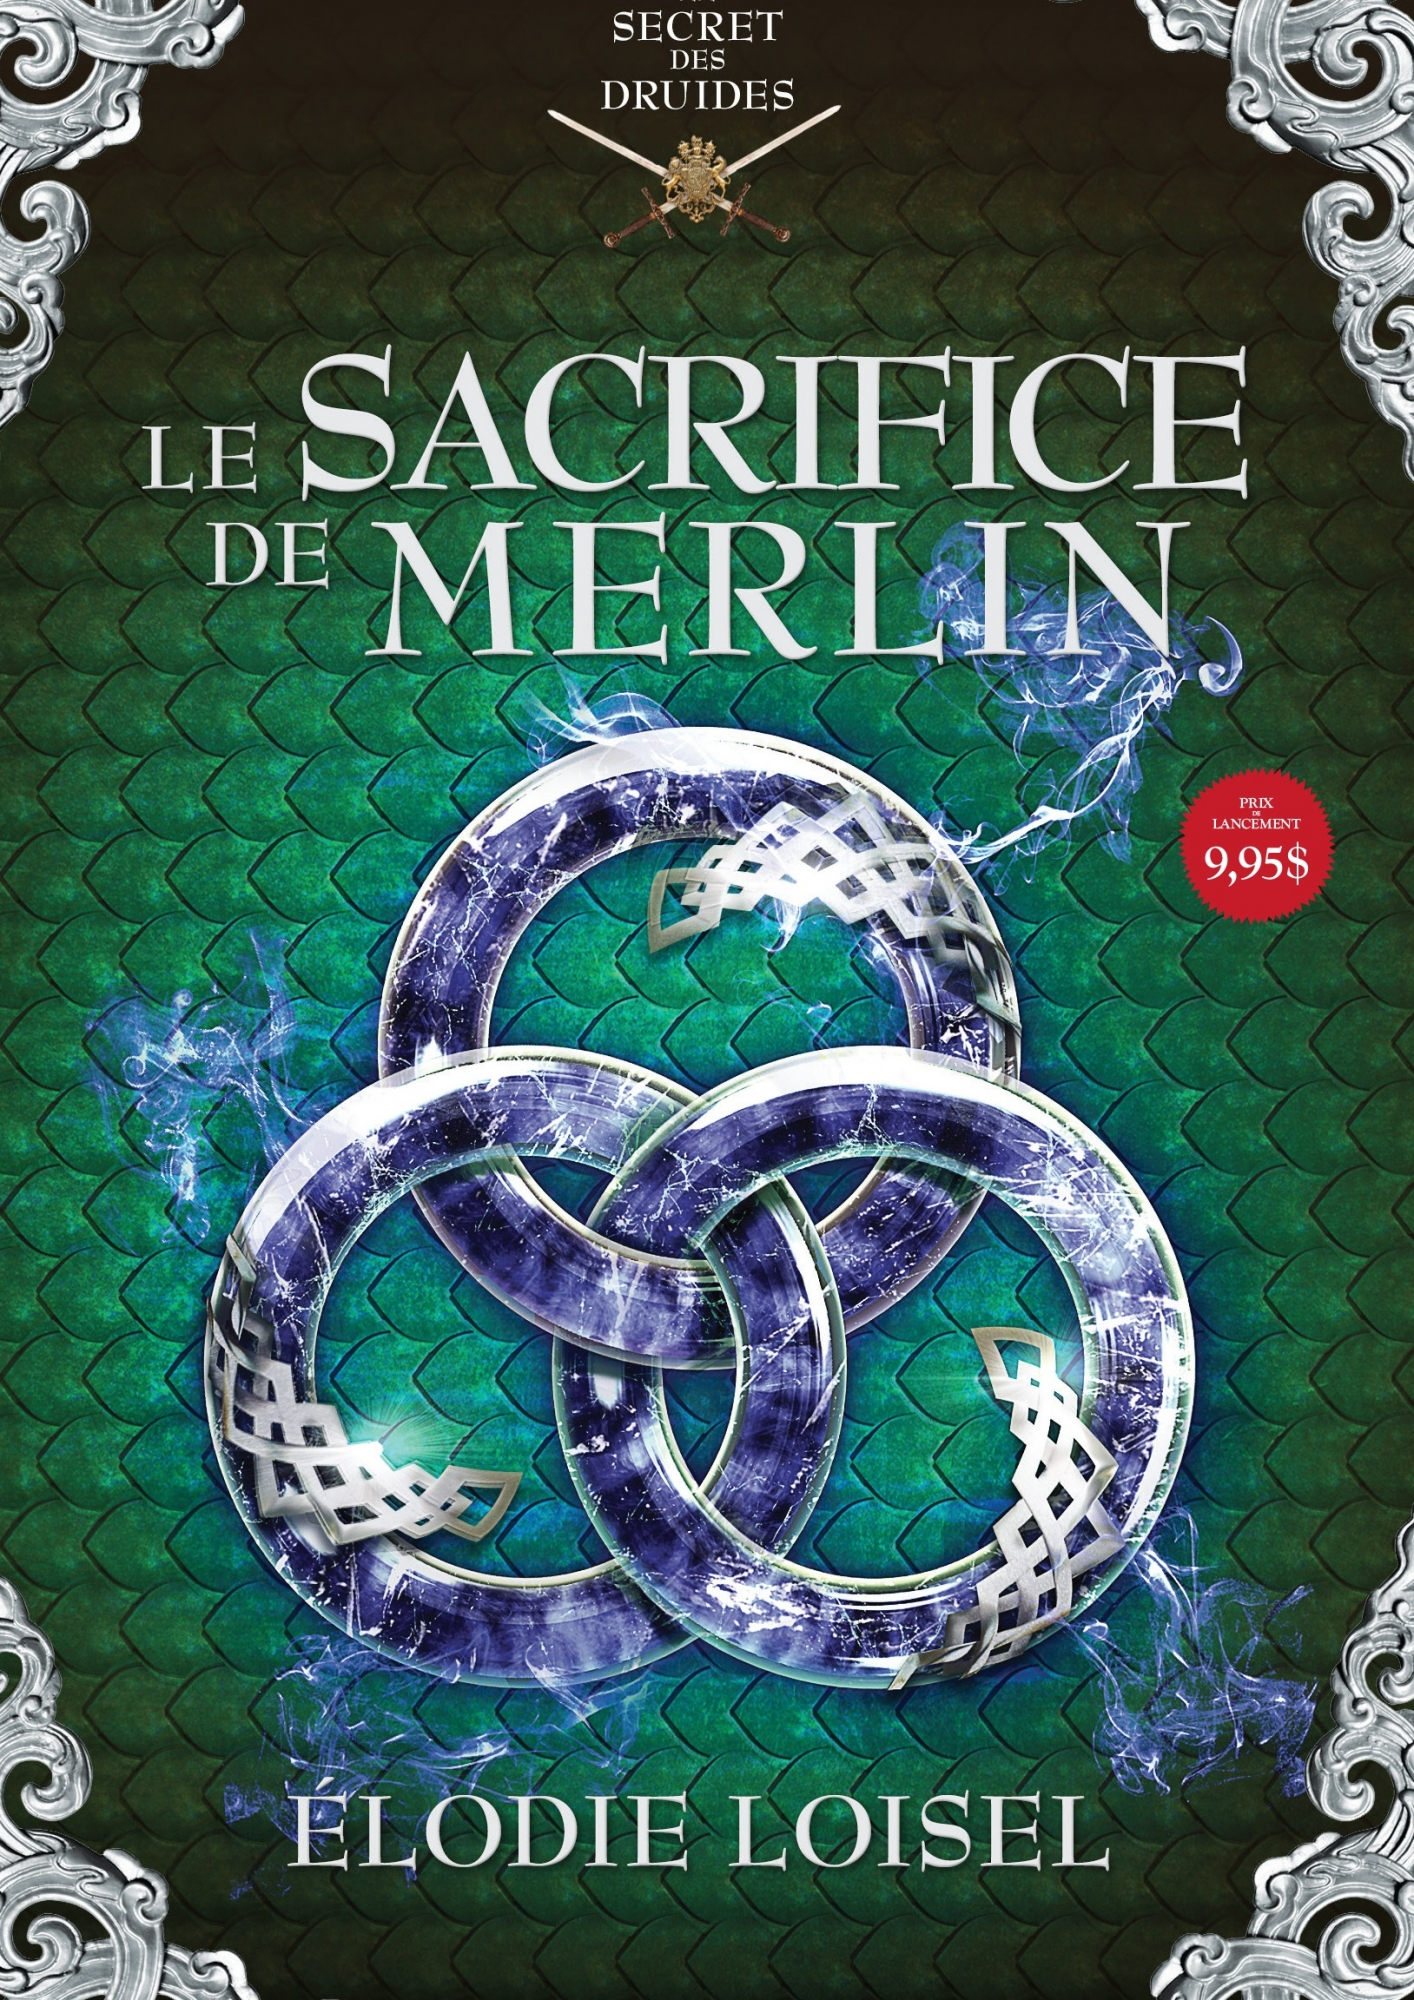 LE SECRET DES DRUIDES -T4- Le sacrifice de Merlin